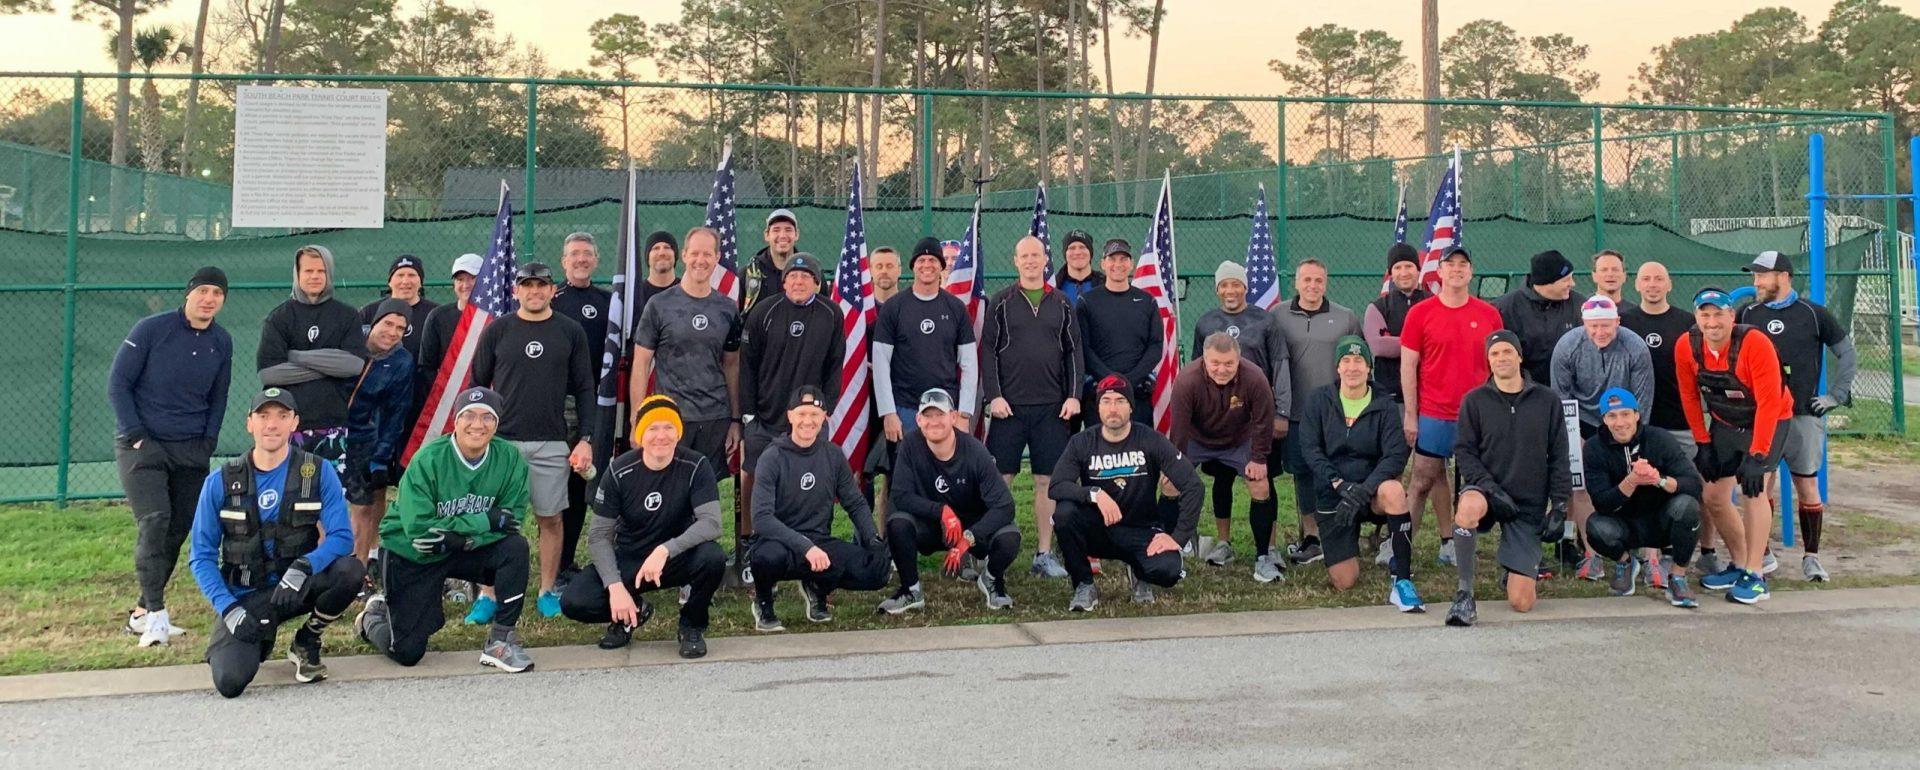 Jacksonville FREE Men's Workout Groups | Men's Fitness Bootcamp Groups | F3 Jax